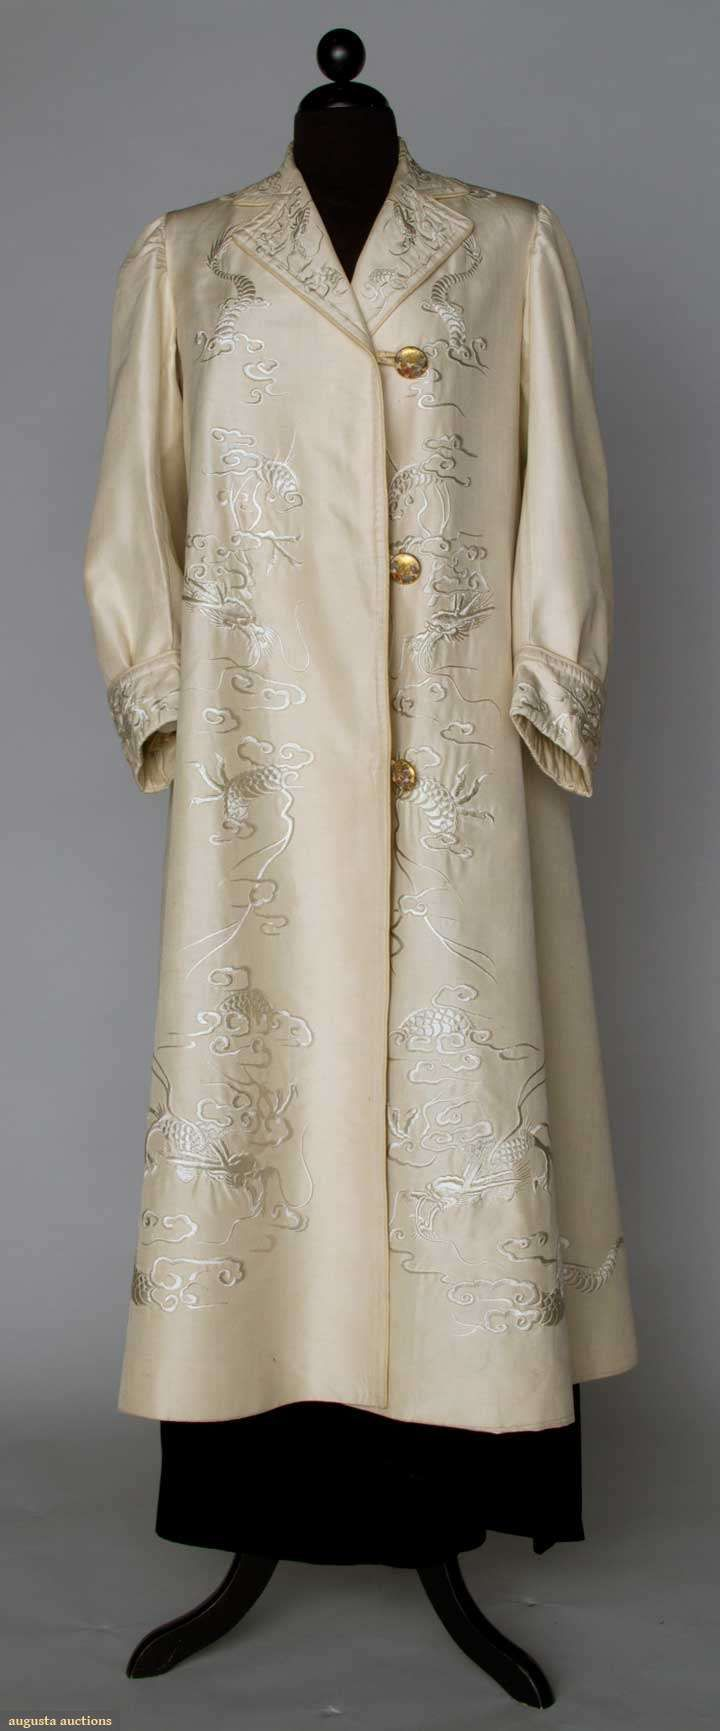 Beige Silk Export Coat, c 1910, dragons embroidered on front & on cuffs, Satsuma buttons, Japanese shop label